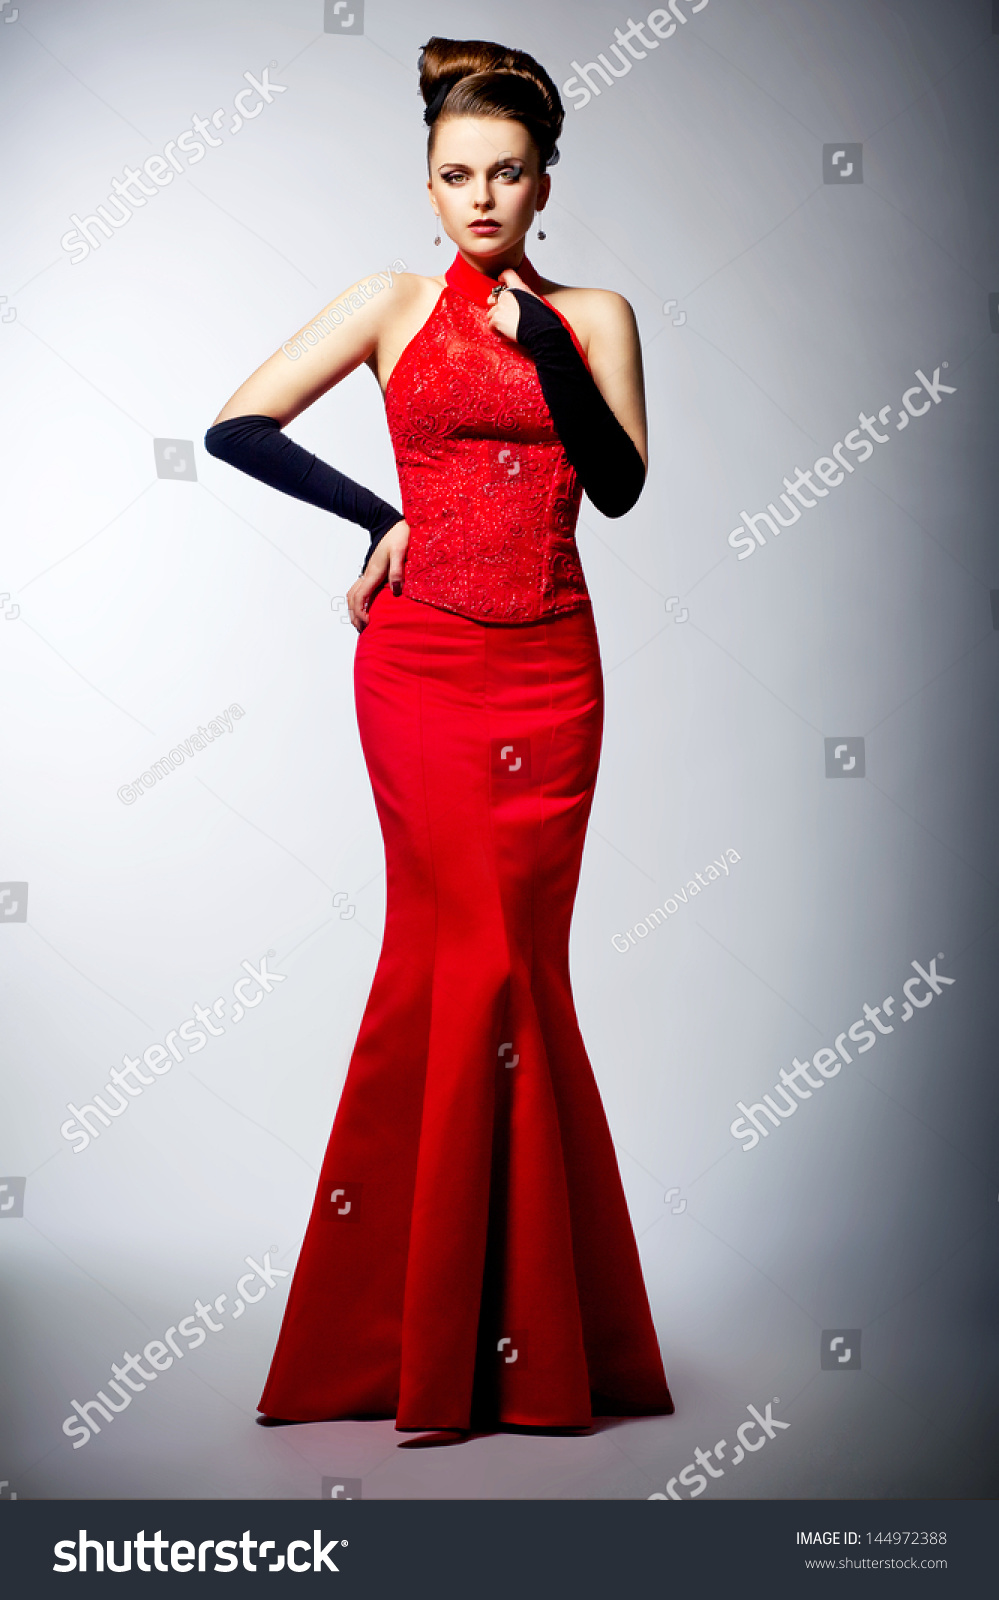 Black gloves for gown - Beautiful Woman In Black Gloves And Sleeveless Red Dress